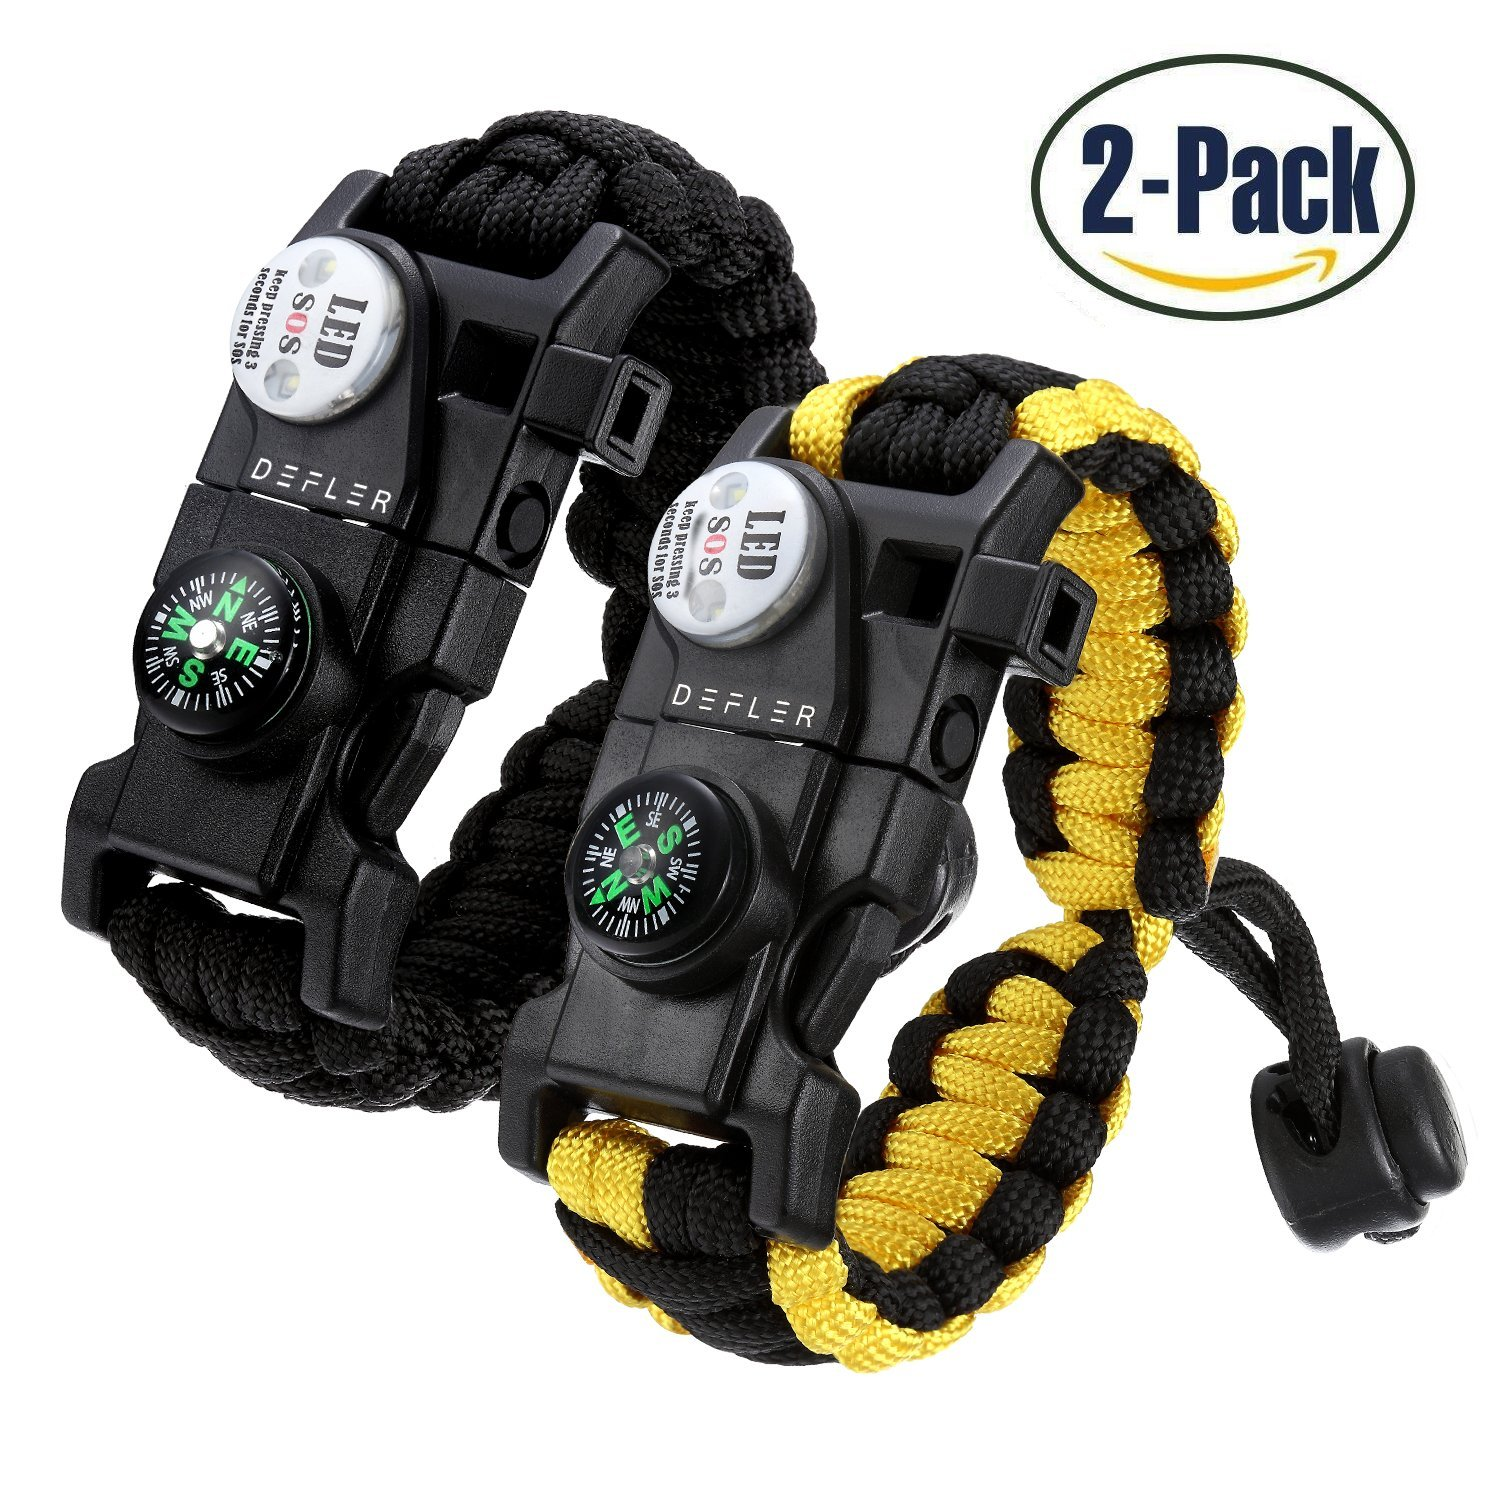 Defler Paracord Survival Bracelet, [2 Pack] 20 in 1 Survival Gear Kit with Waterproof SOS LED Light Emergency Knife Whistle Compass Fire Starter for Camping Hiking Cycling